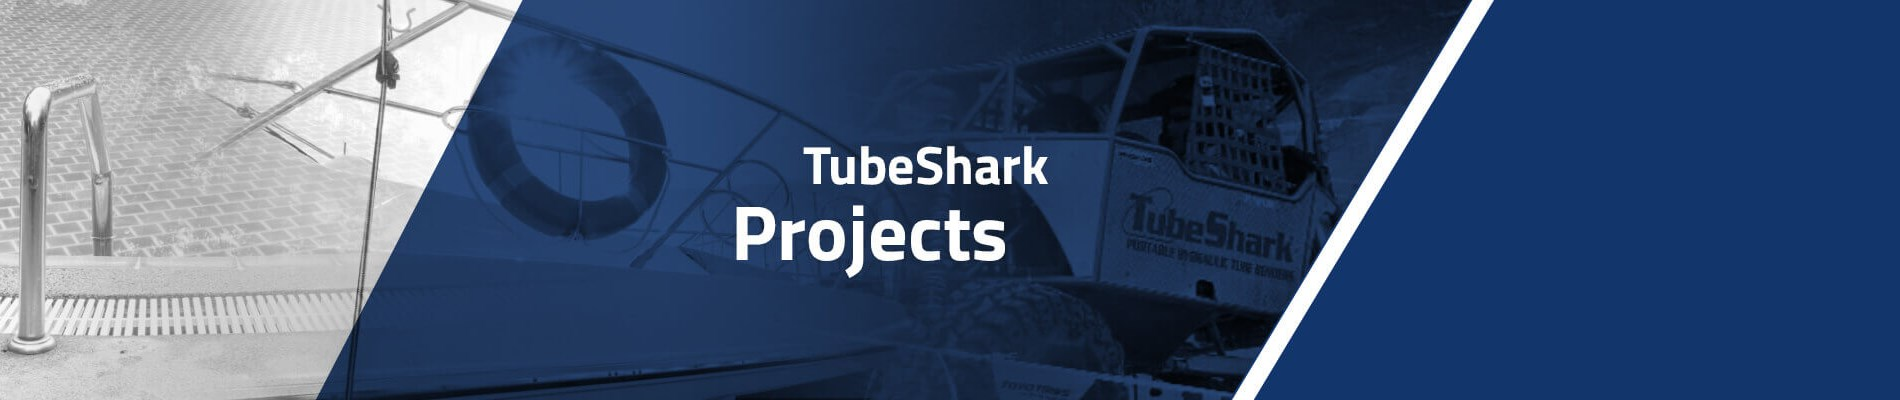 TubeShark Projects